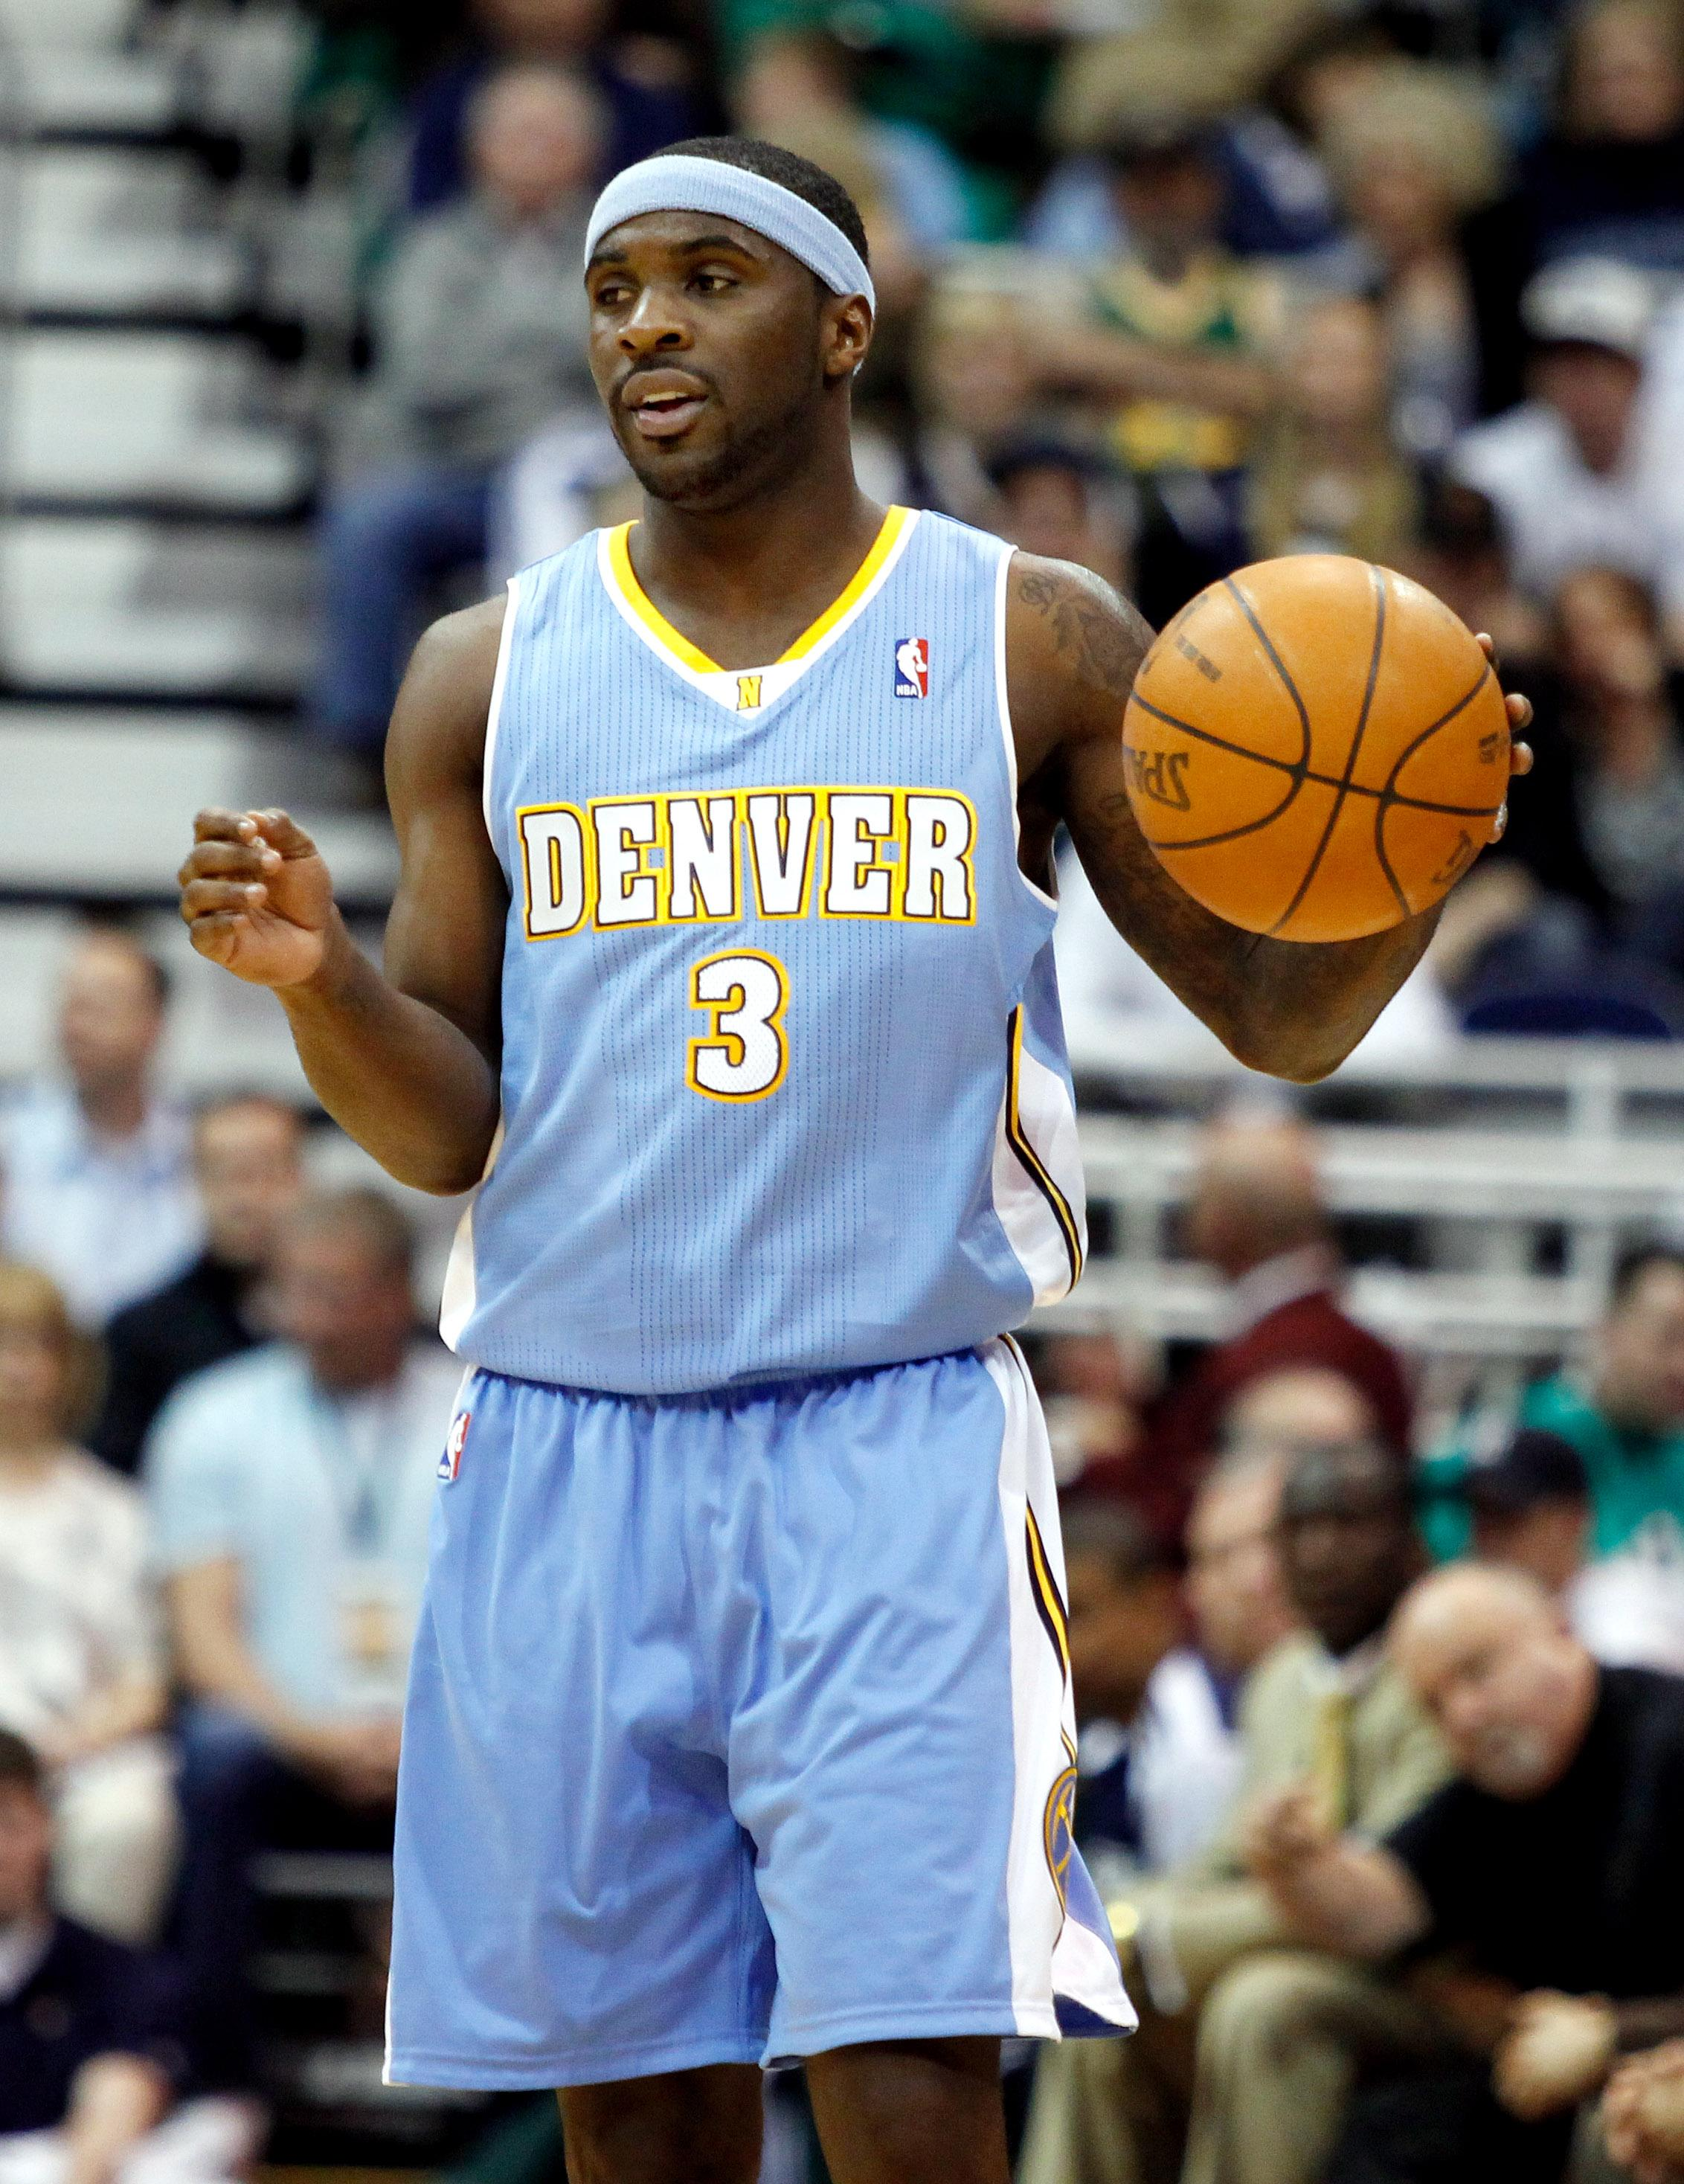 afd1fd5b700d The former Denver Nuggets guard Ty Lawson signed with the Sacramento Kings.  (Steve C